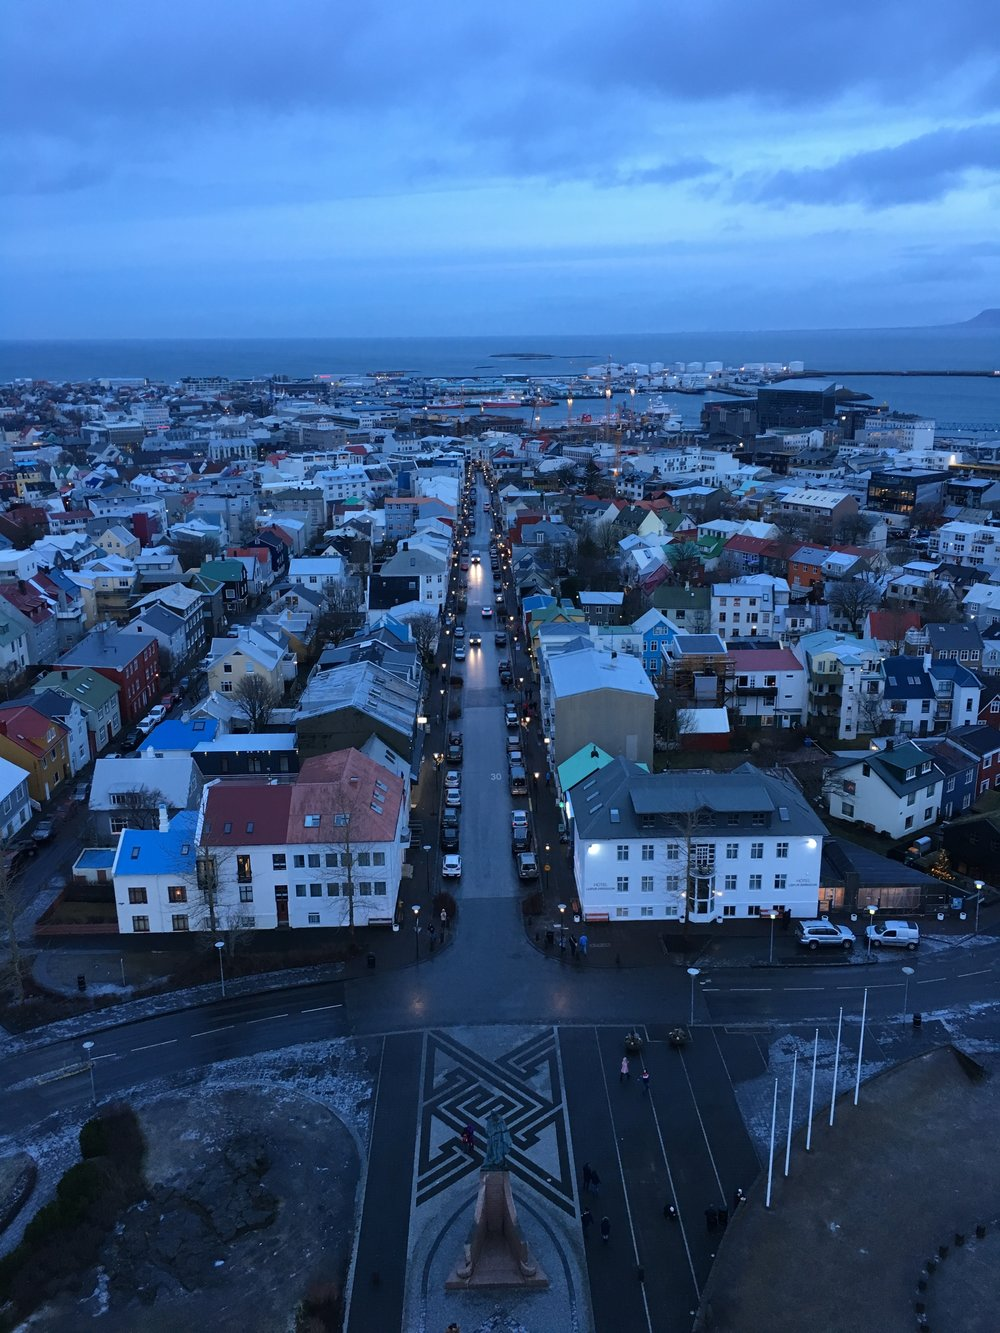 The iconic view of Reykajavik from the Hallgrimskirkja Tower, at dawn in January...which happened to be around 11 AM!